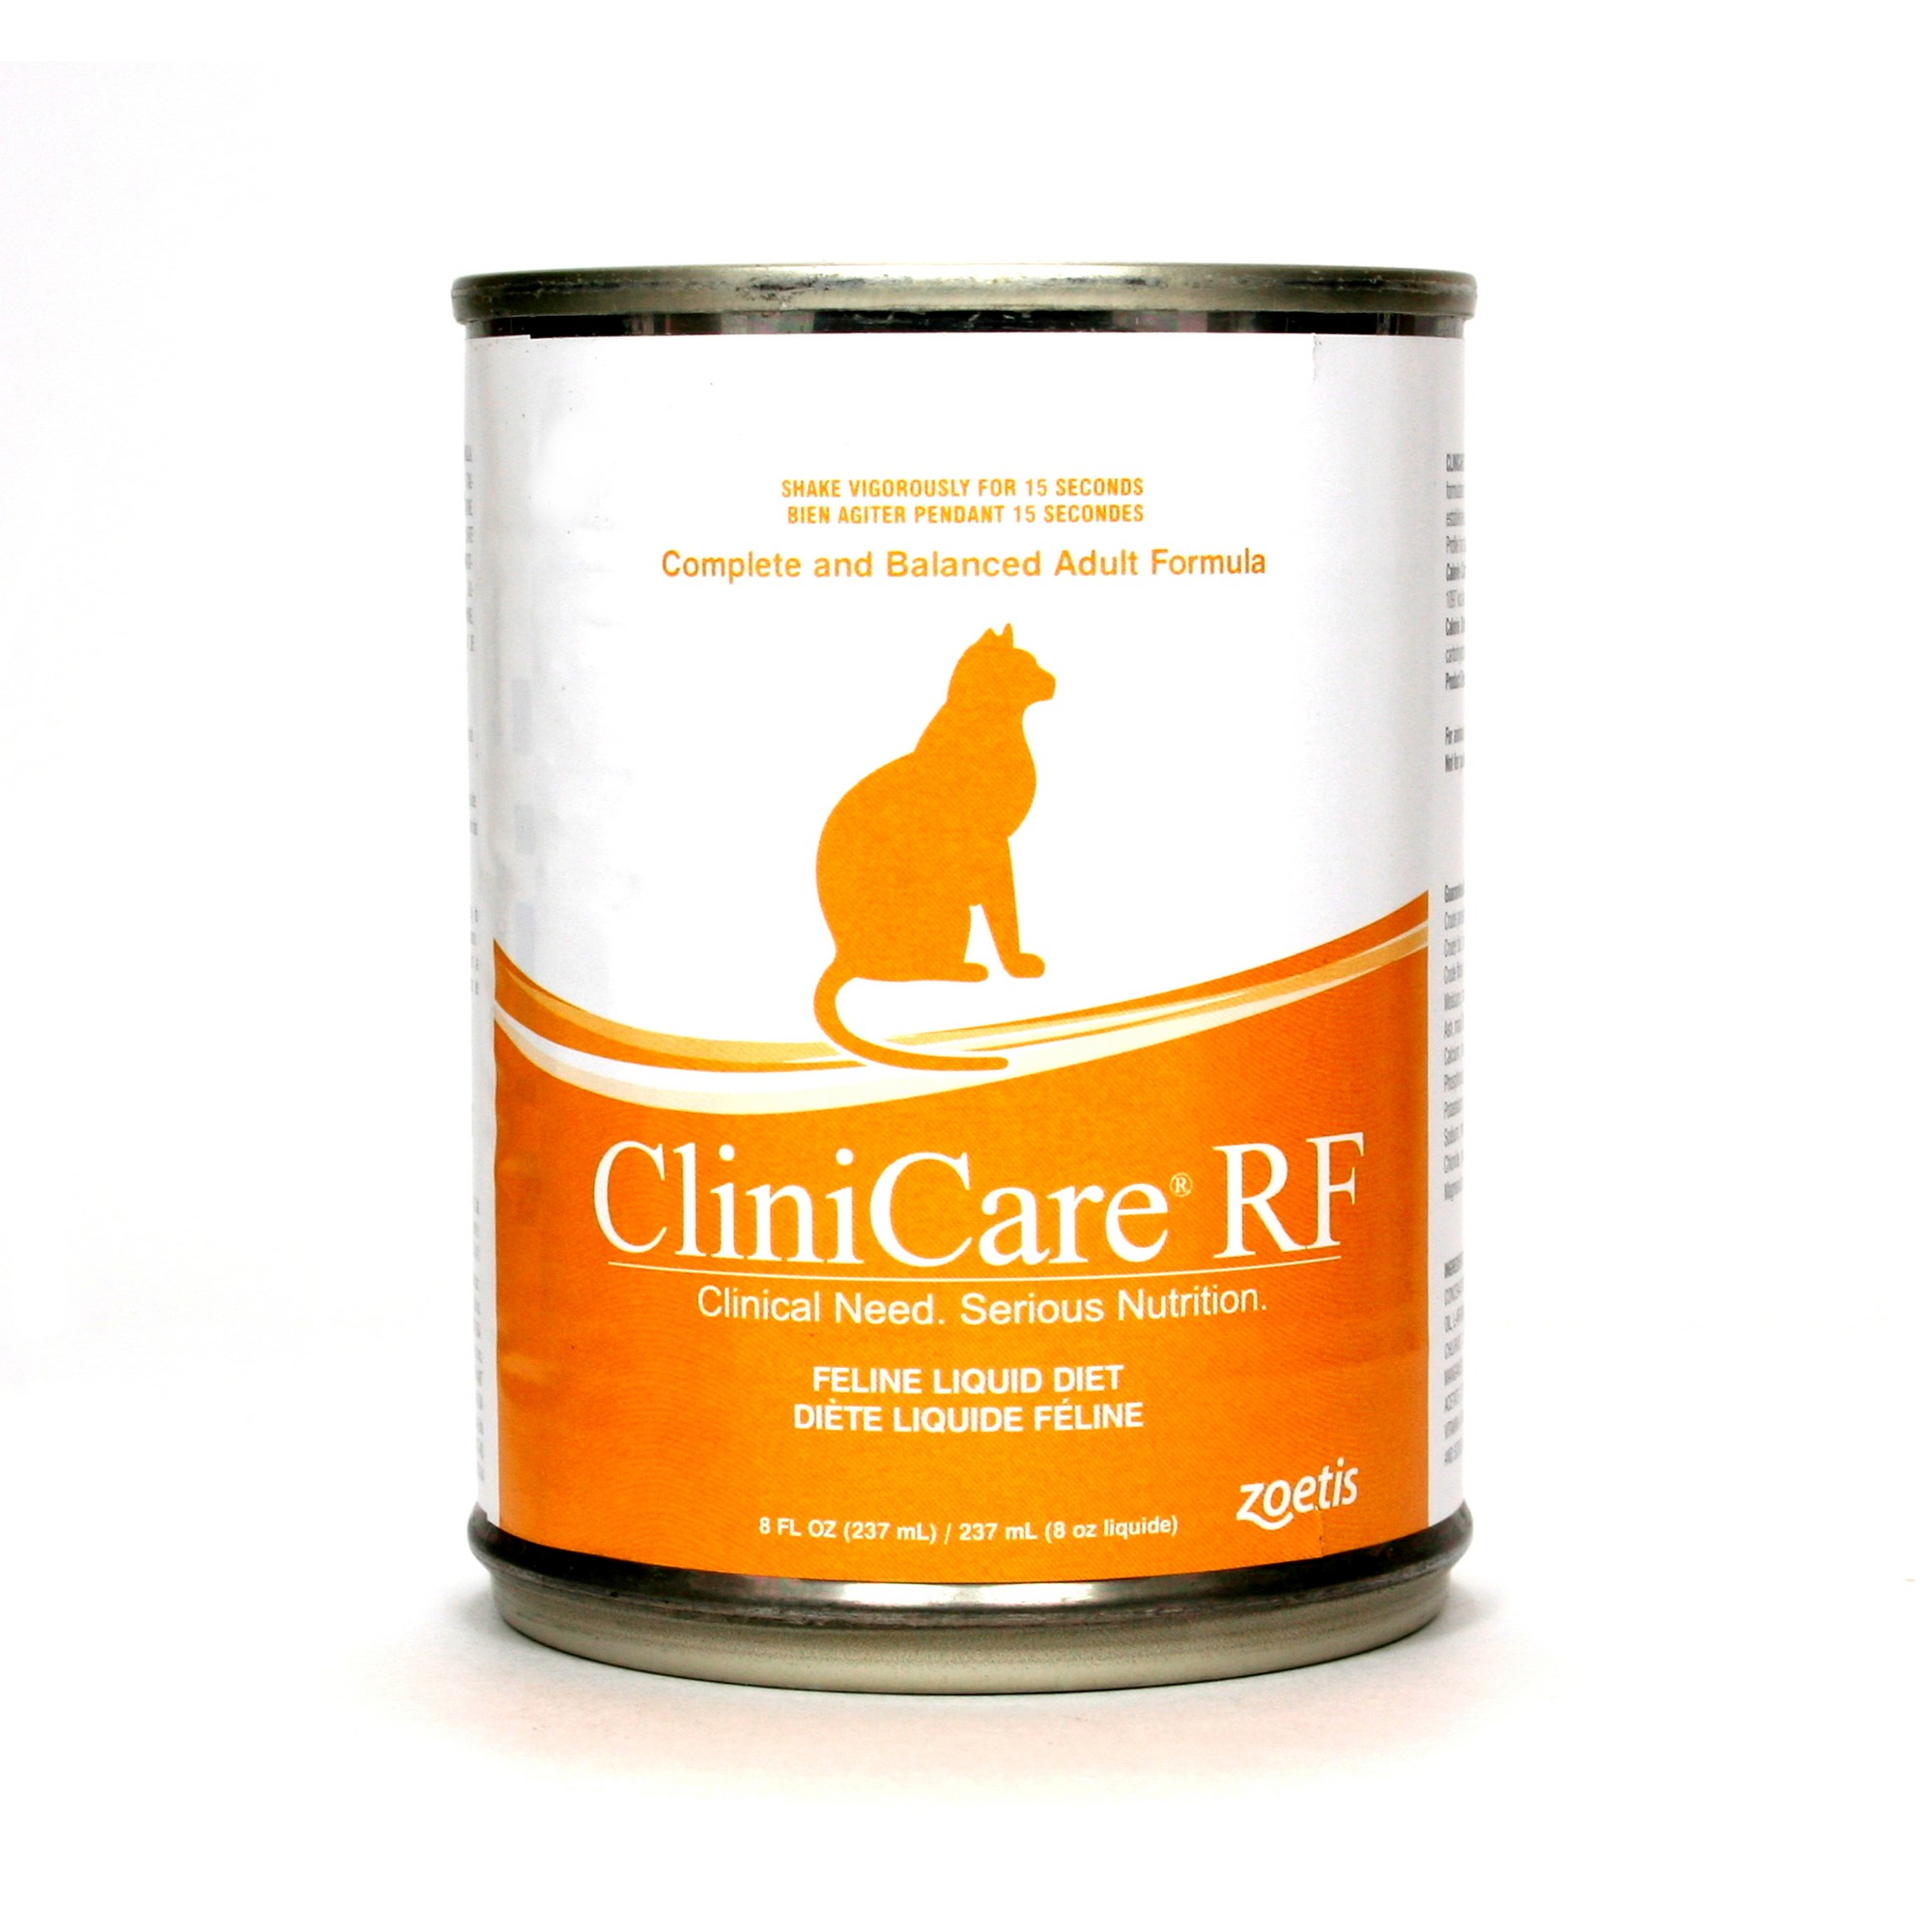 Clinicare Rf Feline Liquid Diet 8 Oz The Cheerful Vet